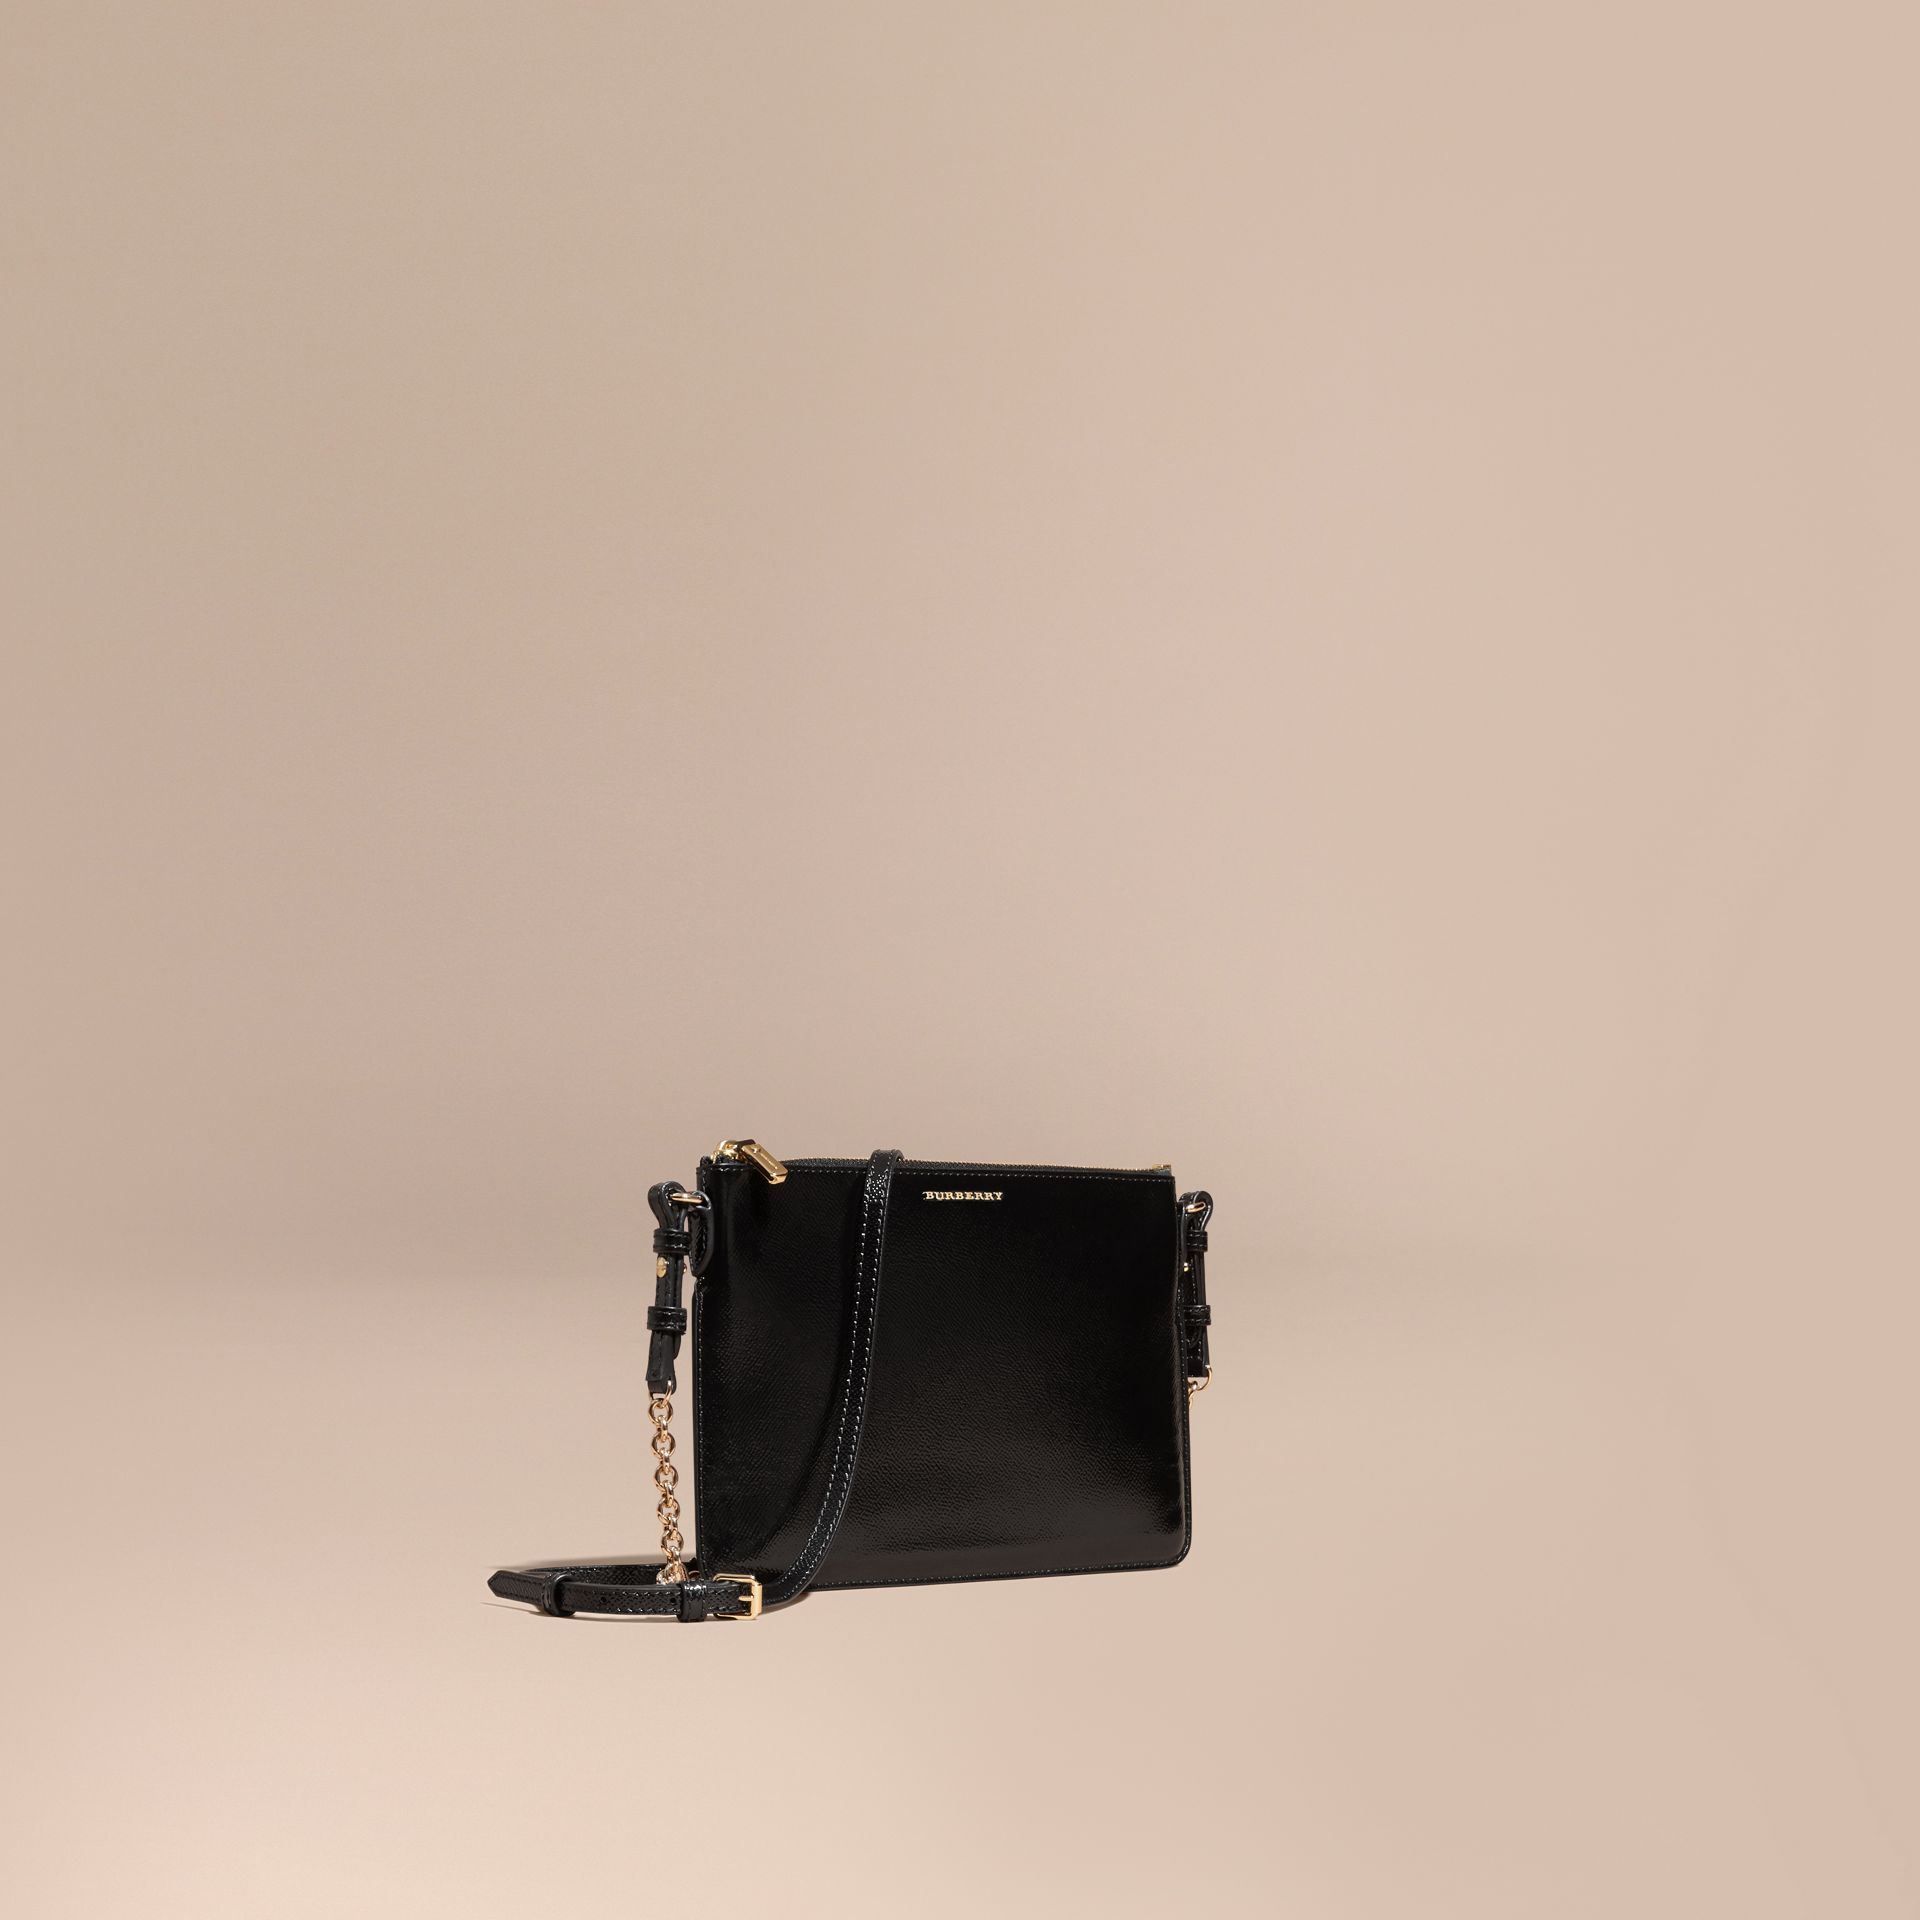 Patent London Leather Clutch Bag in Black - gallery image 1